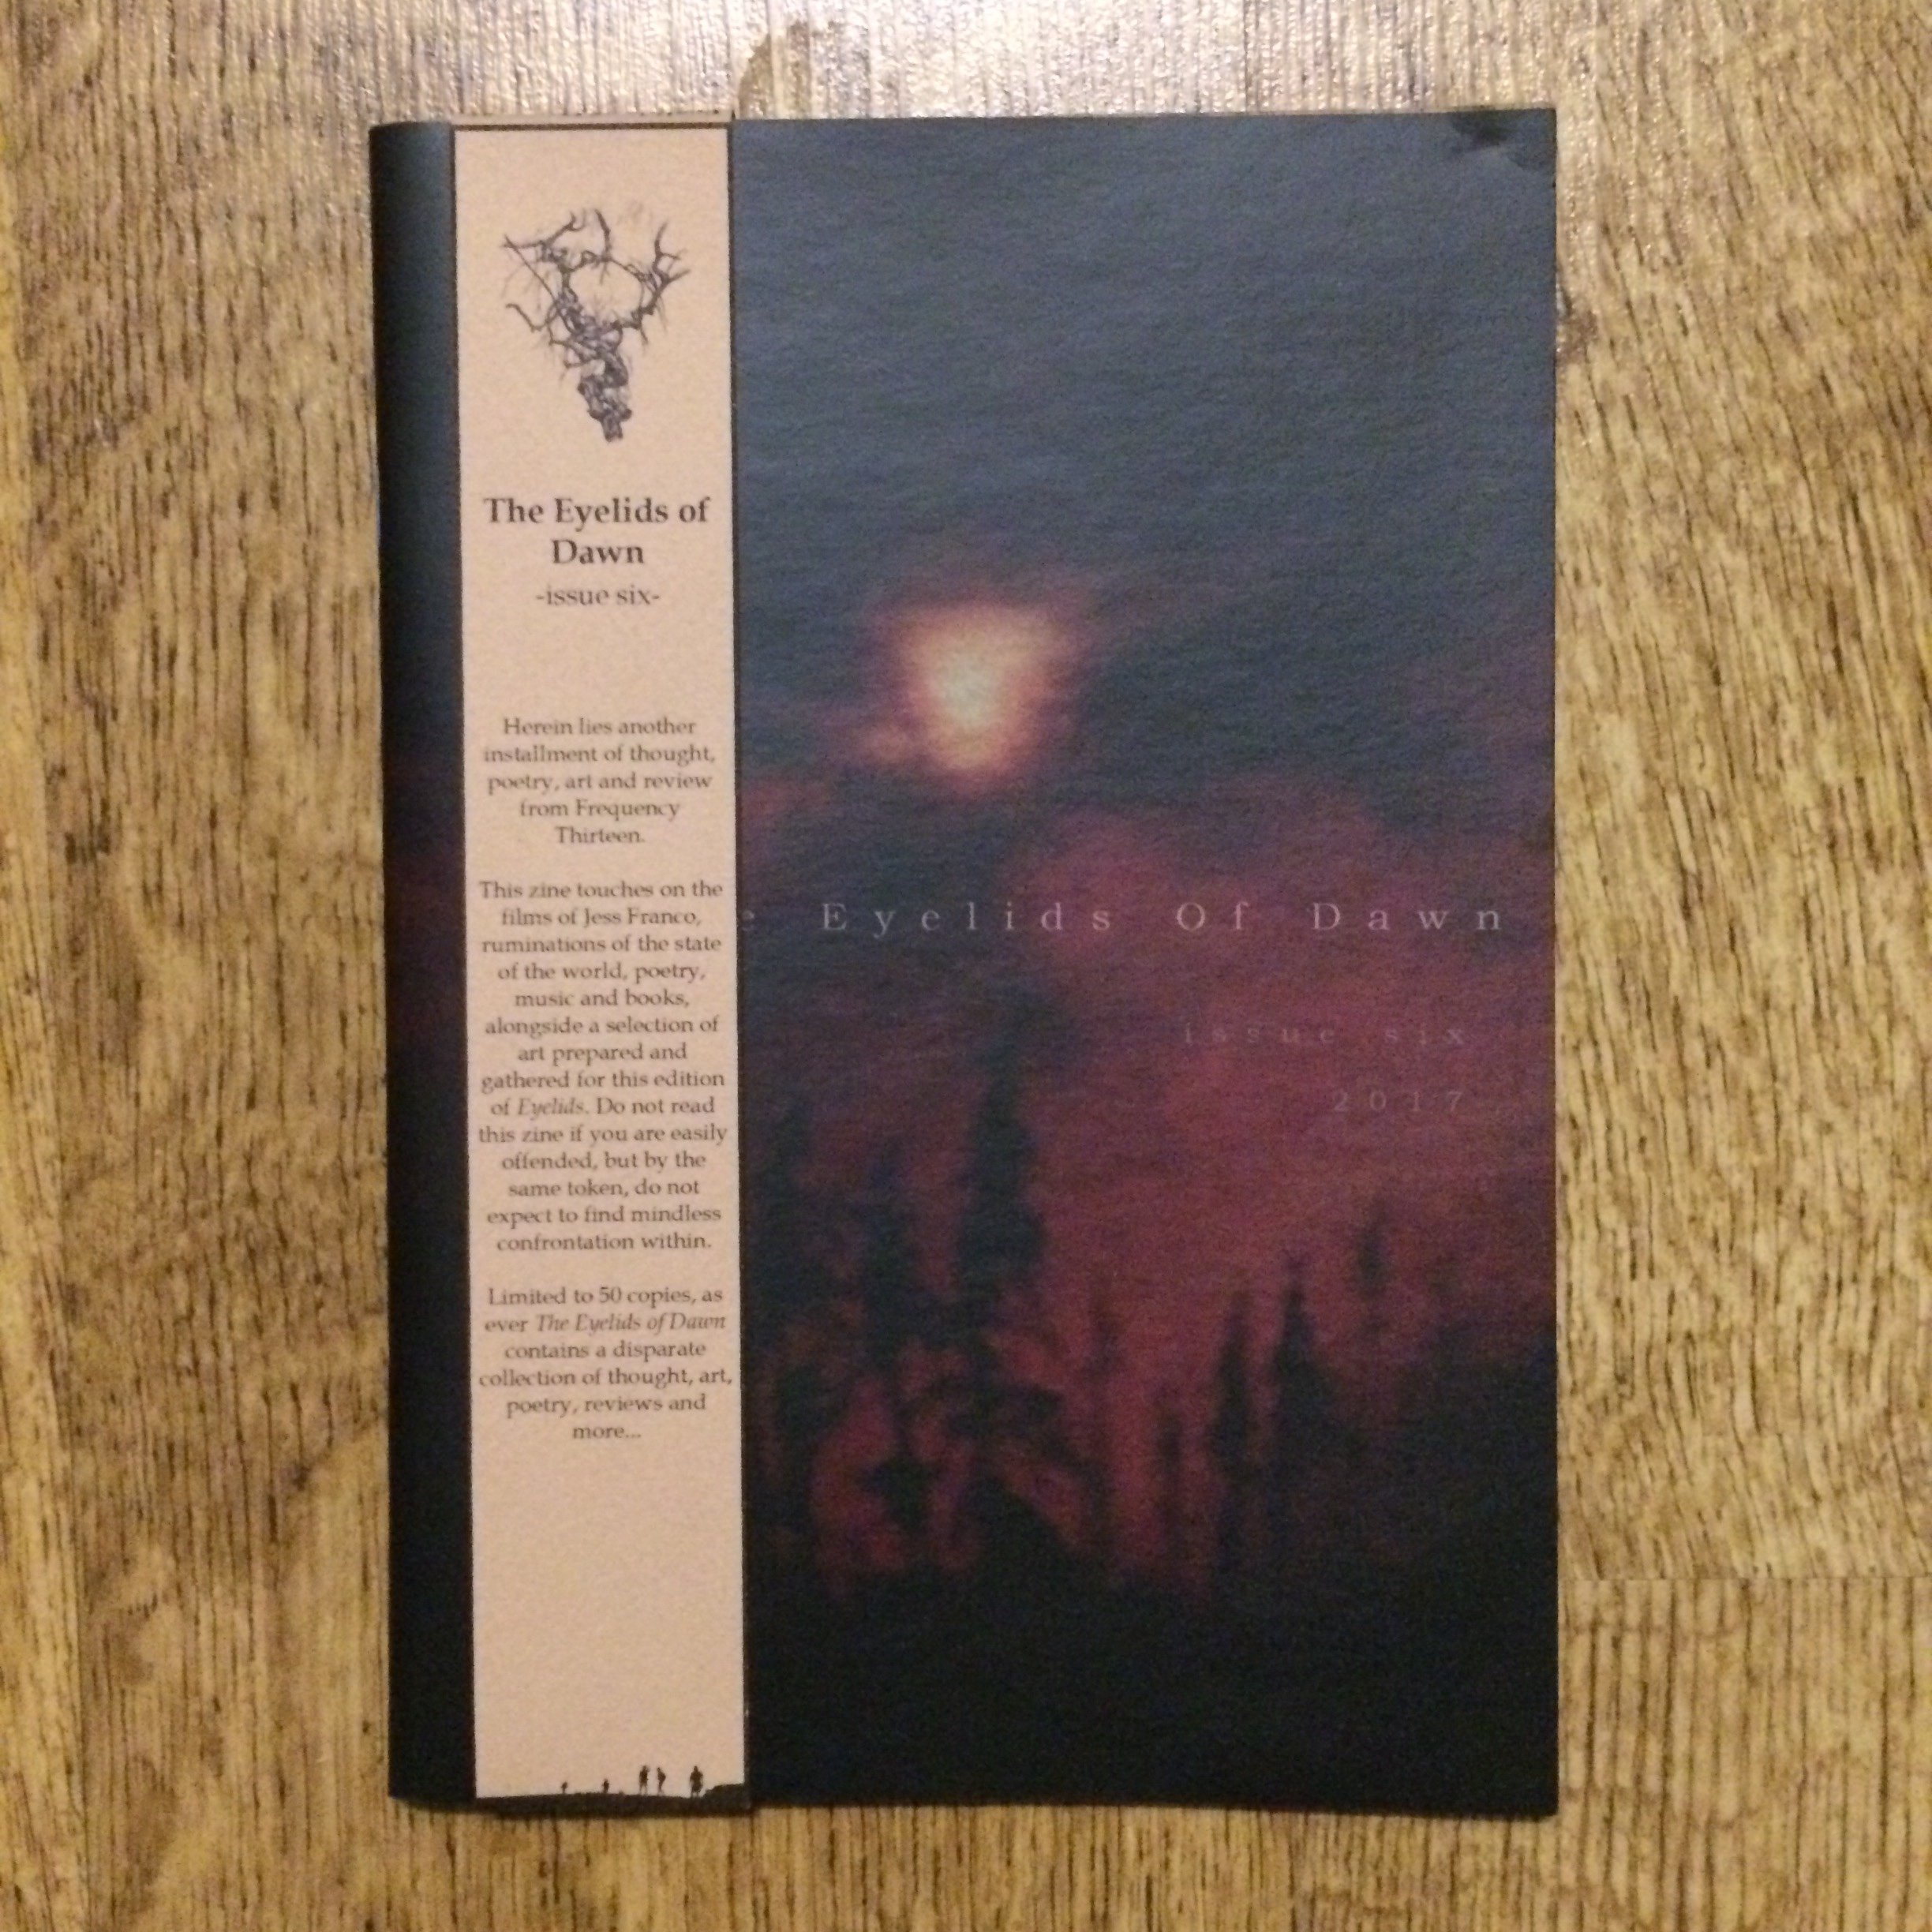 Photo of the The Eyelids of Dawn #6